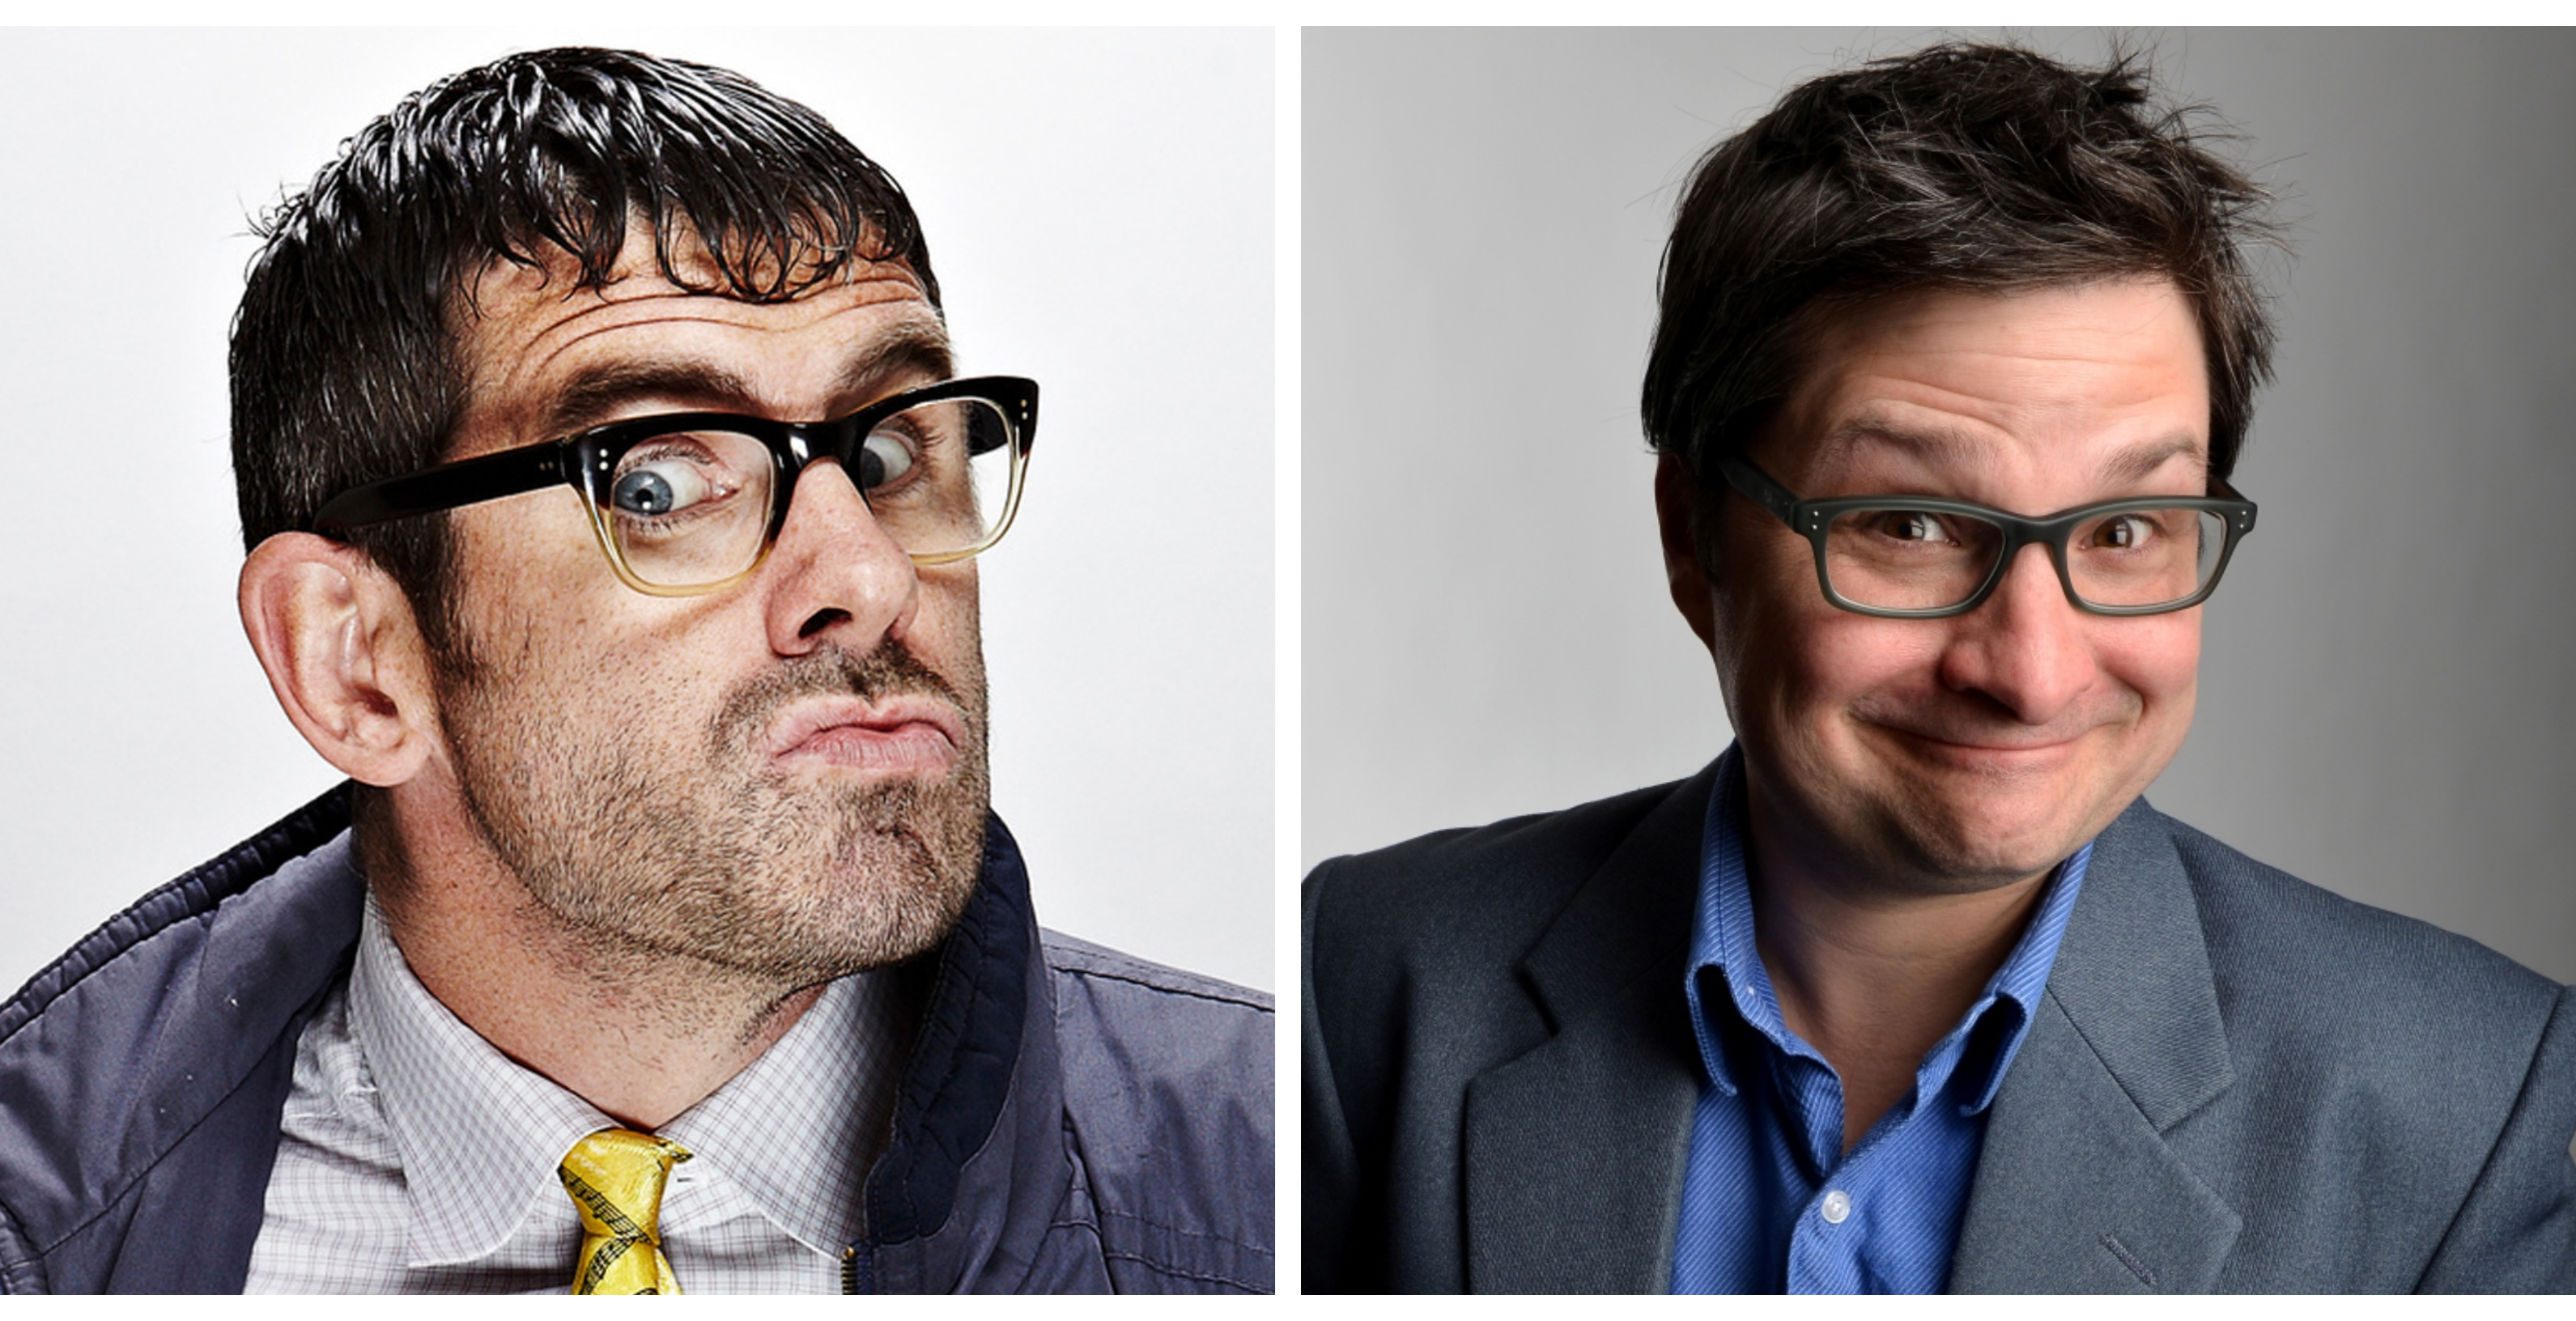 Good Ship Comedy presents Angelos Epithemiou & Erich Mcelroy